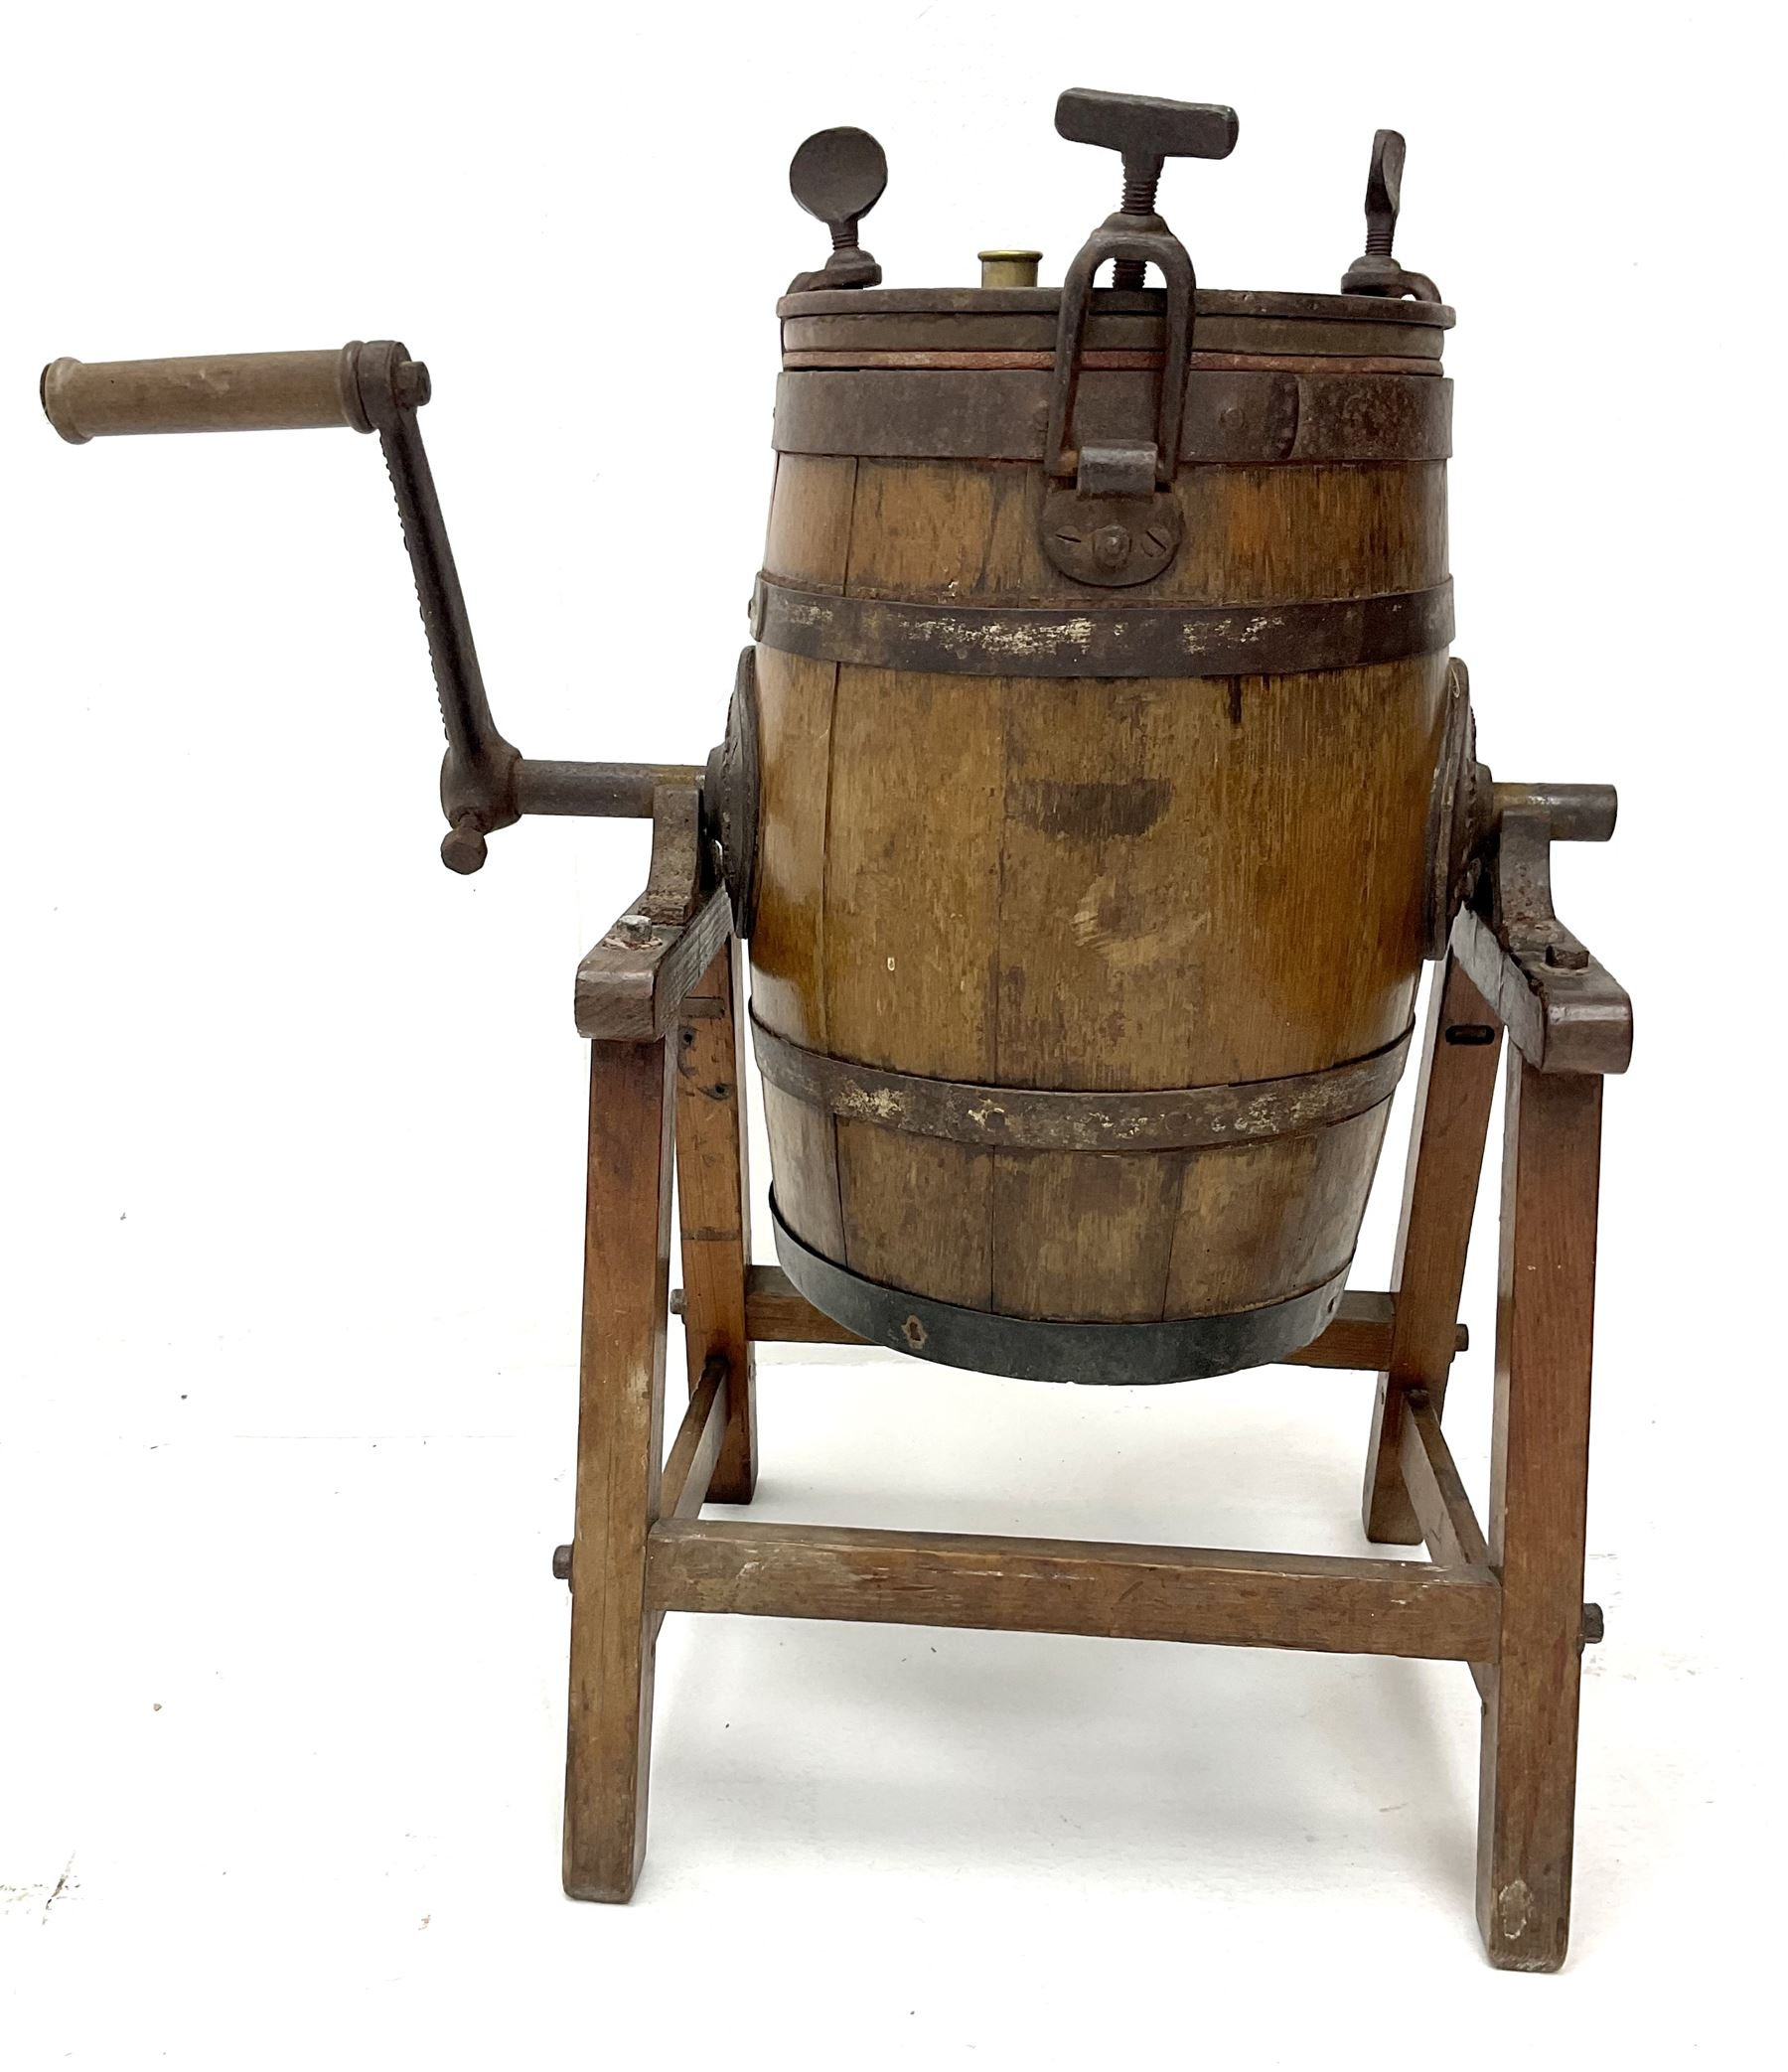 Victorian coopered oak table top butter churn on stand - Image 3 of 4